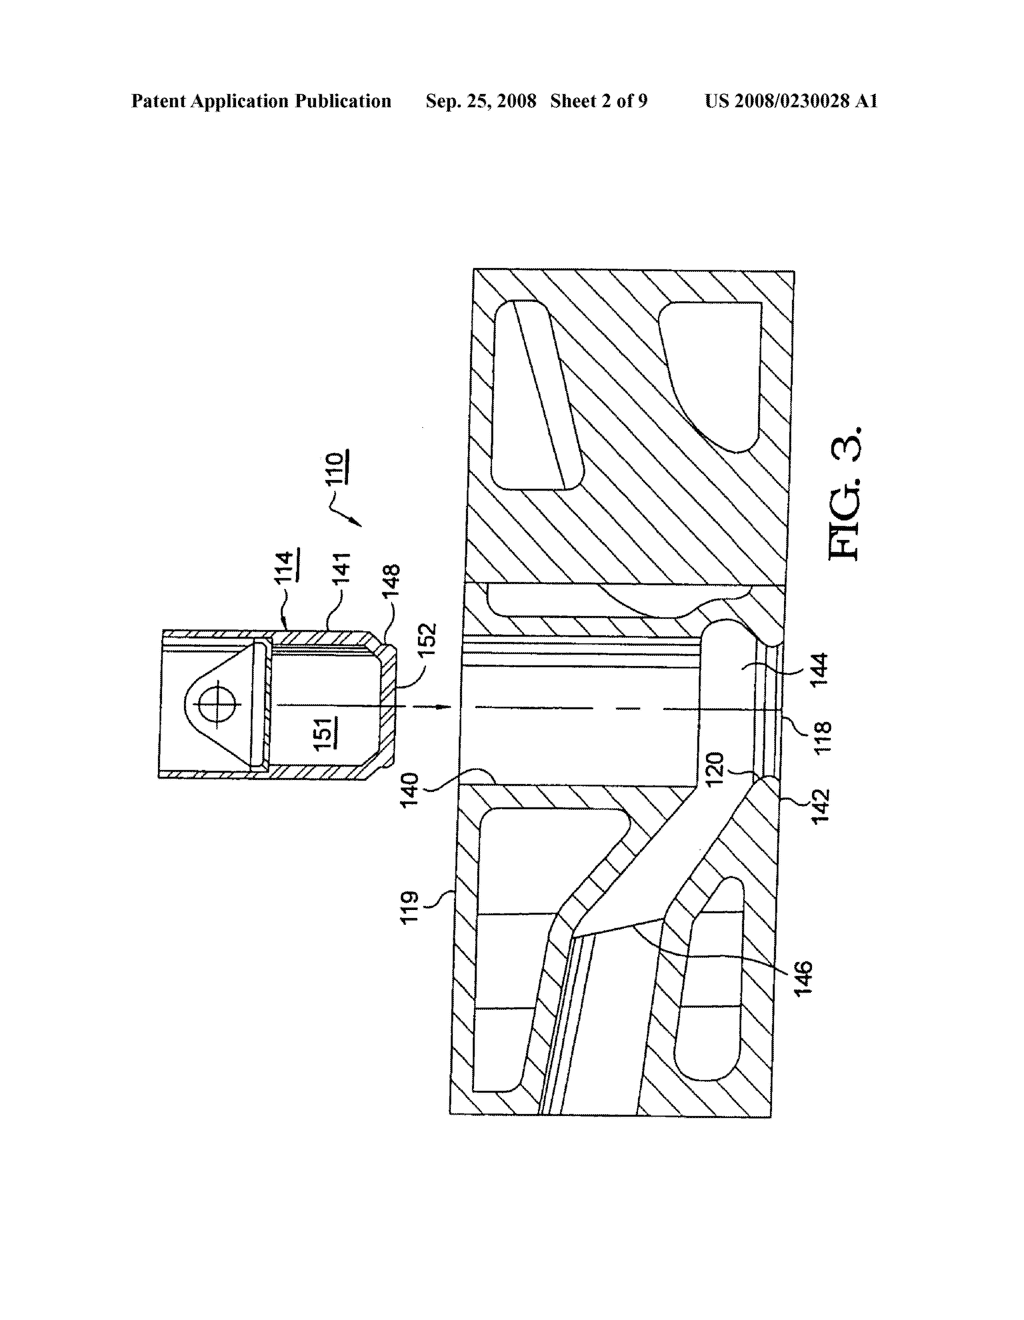 hight resolution of outward opening gas exchange valve system for an internal combustion engine diagram schematic and image 03